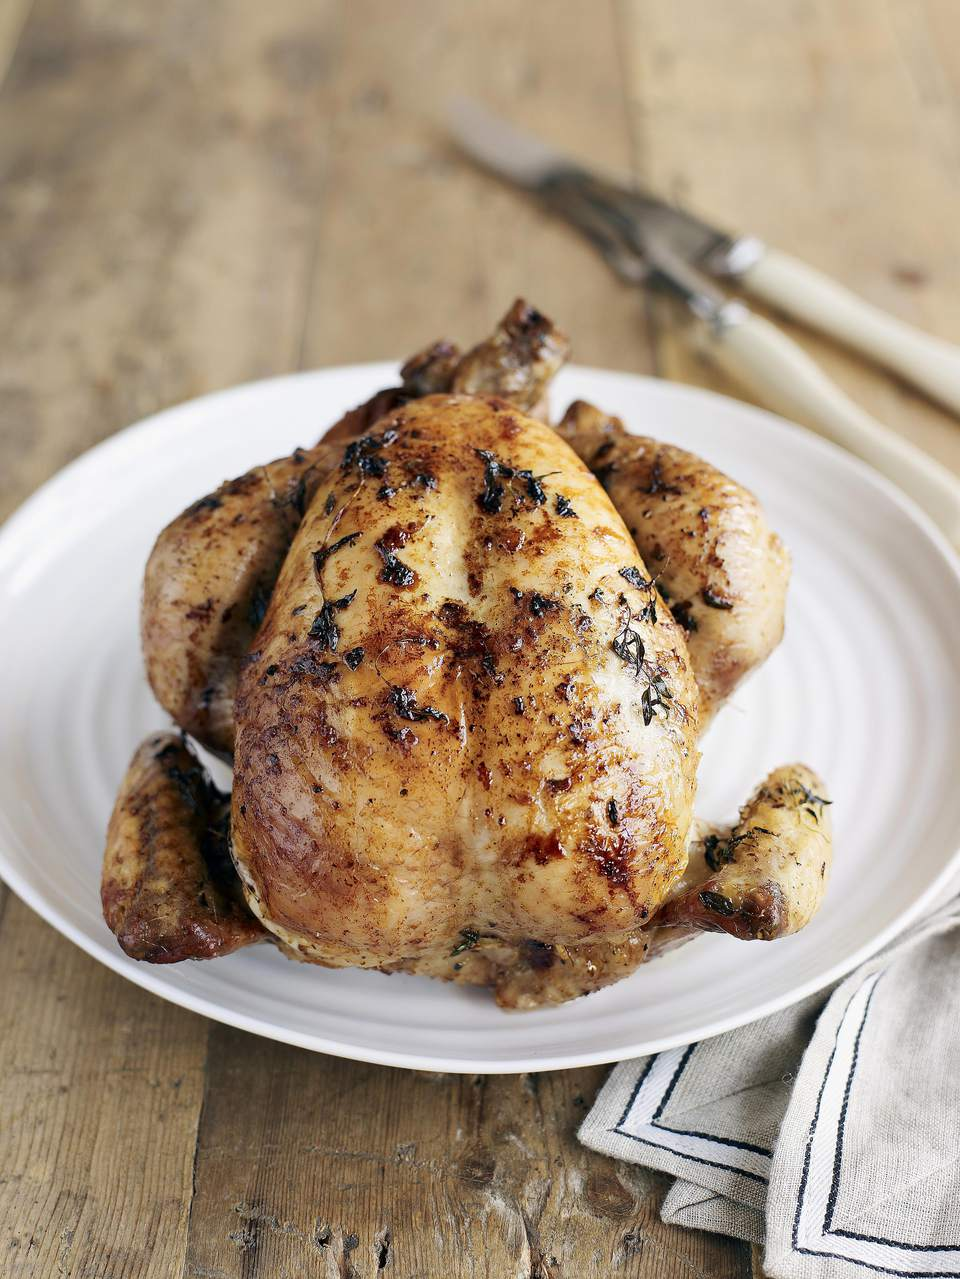 Garlic-Lemon Rotisserie Chicken